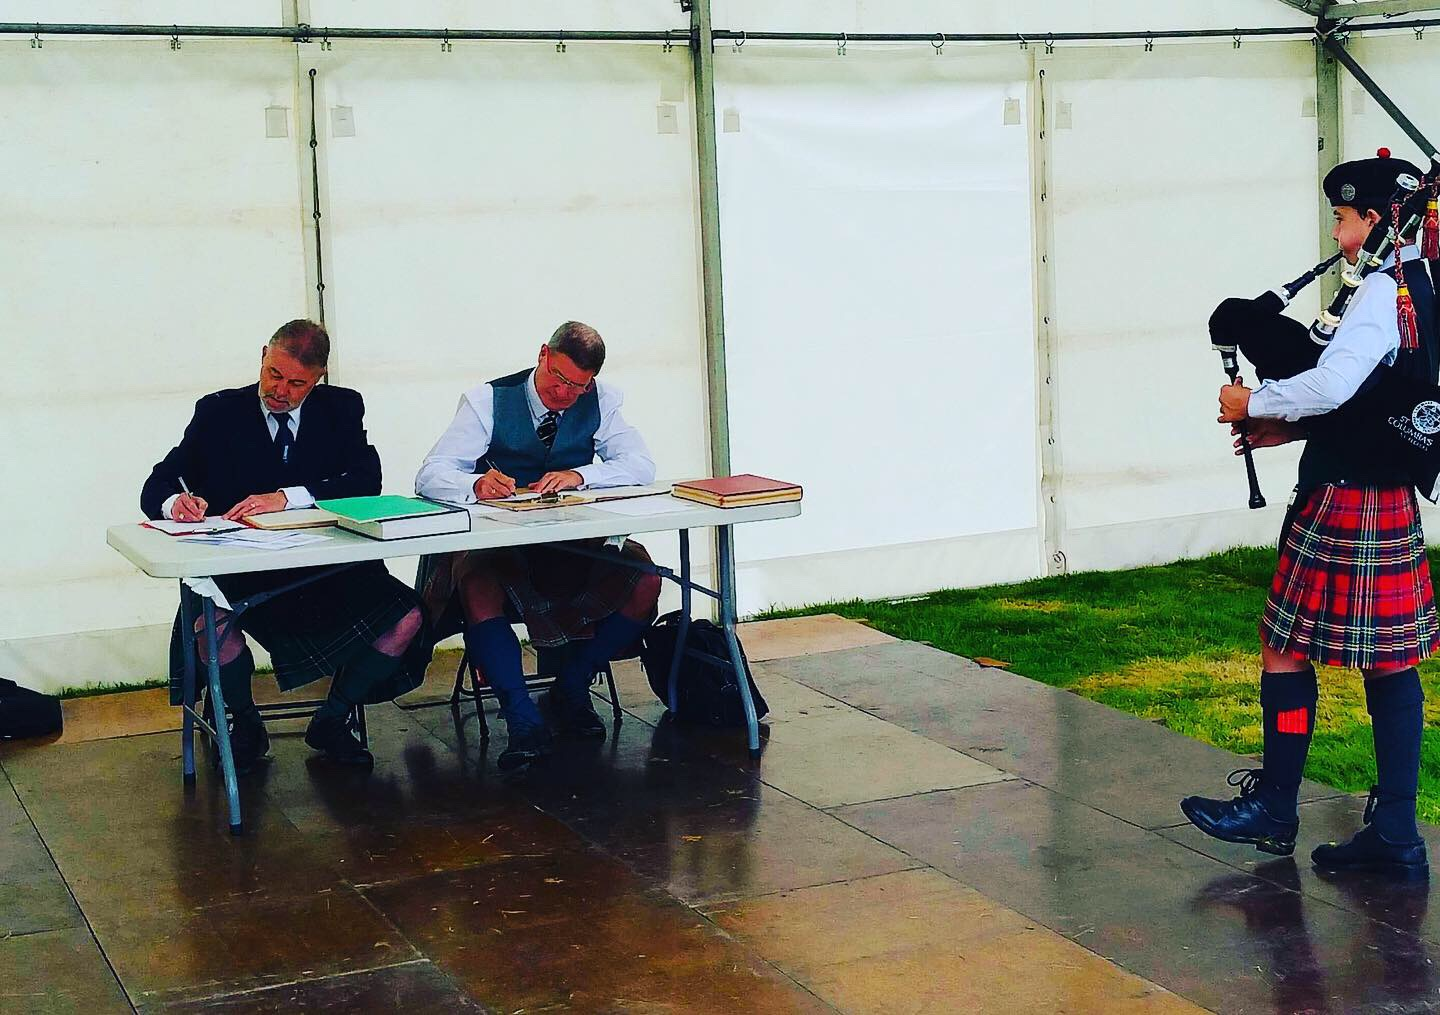 A spot of judging at Inveraray Highland games with Ian Hurst. July 2019